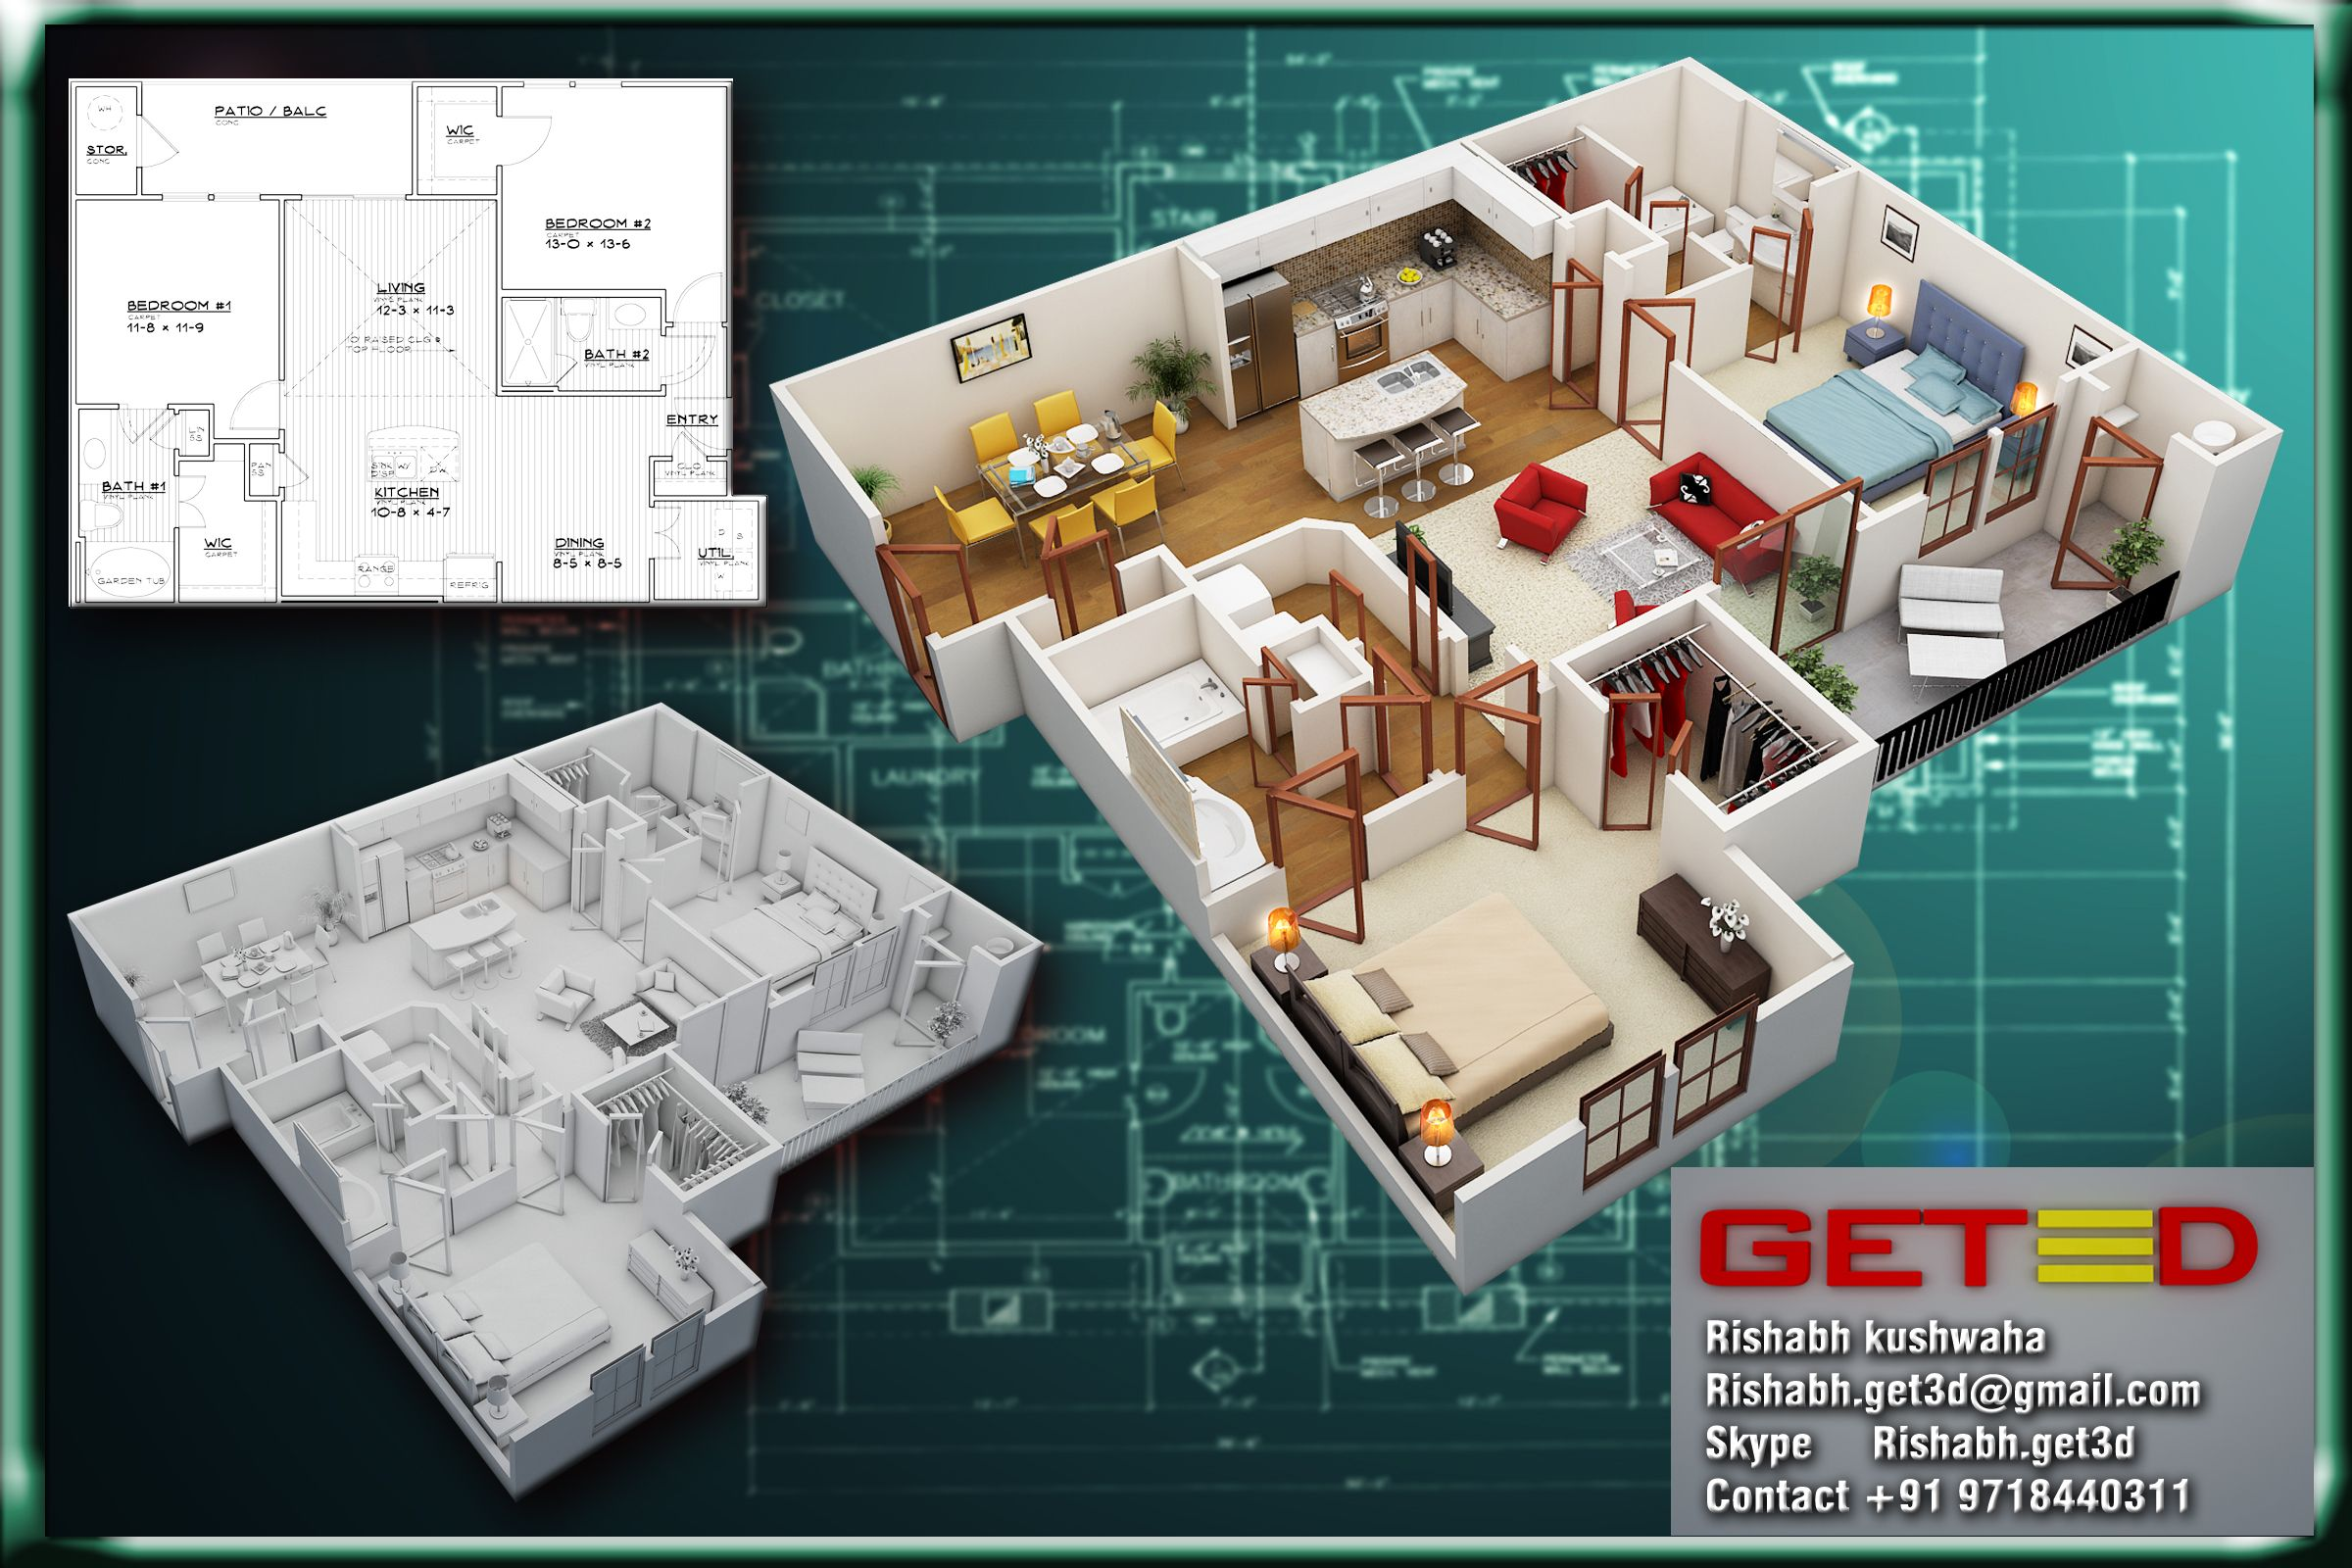 3d floor plan on the basis of 2d layout. | Floor plans, How ... on